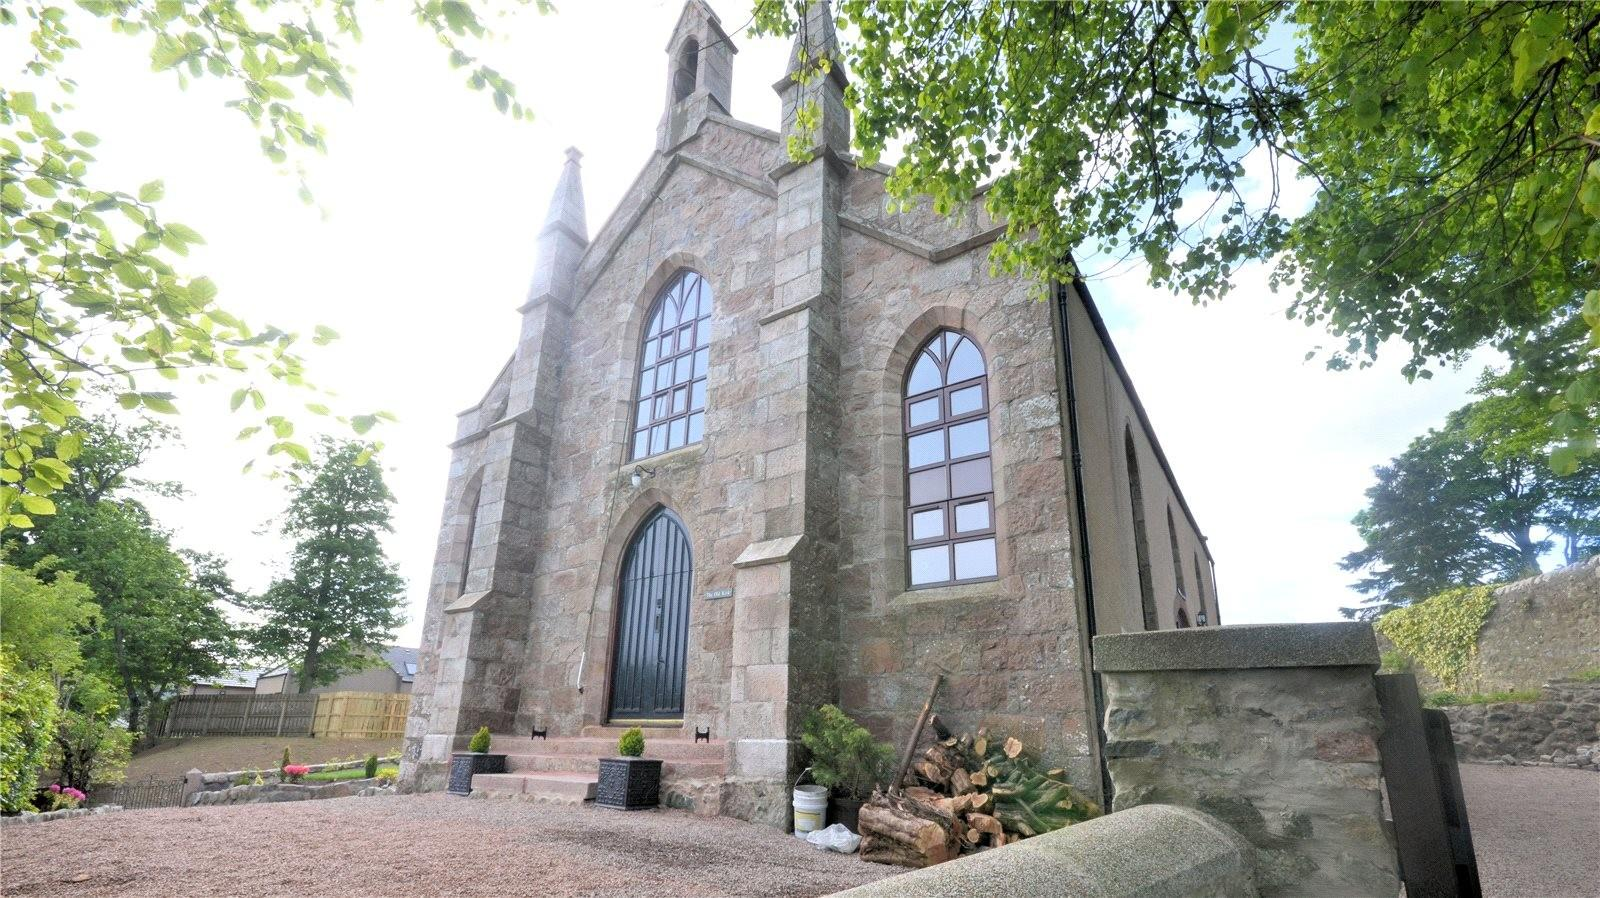 Church Converted Into Divine Family Home Aberdein Considine